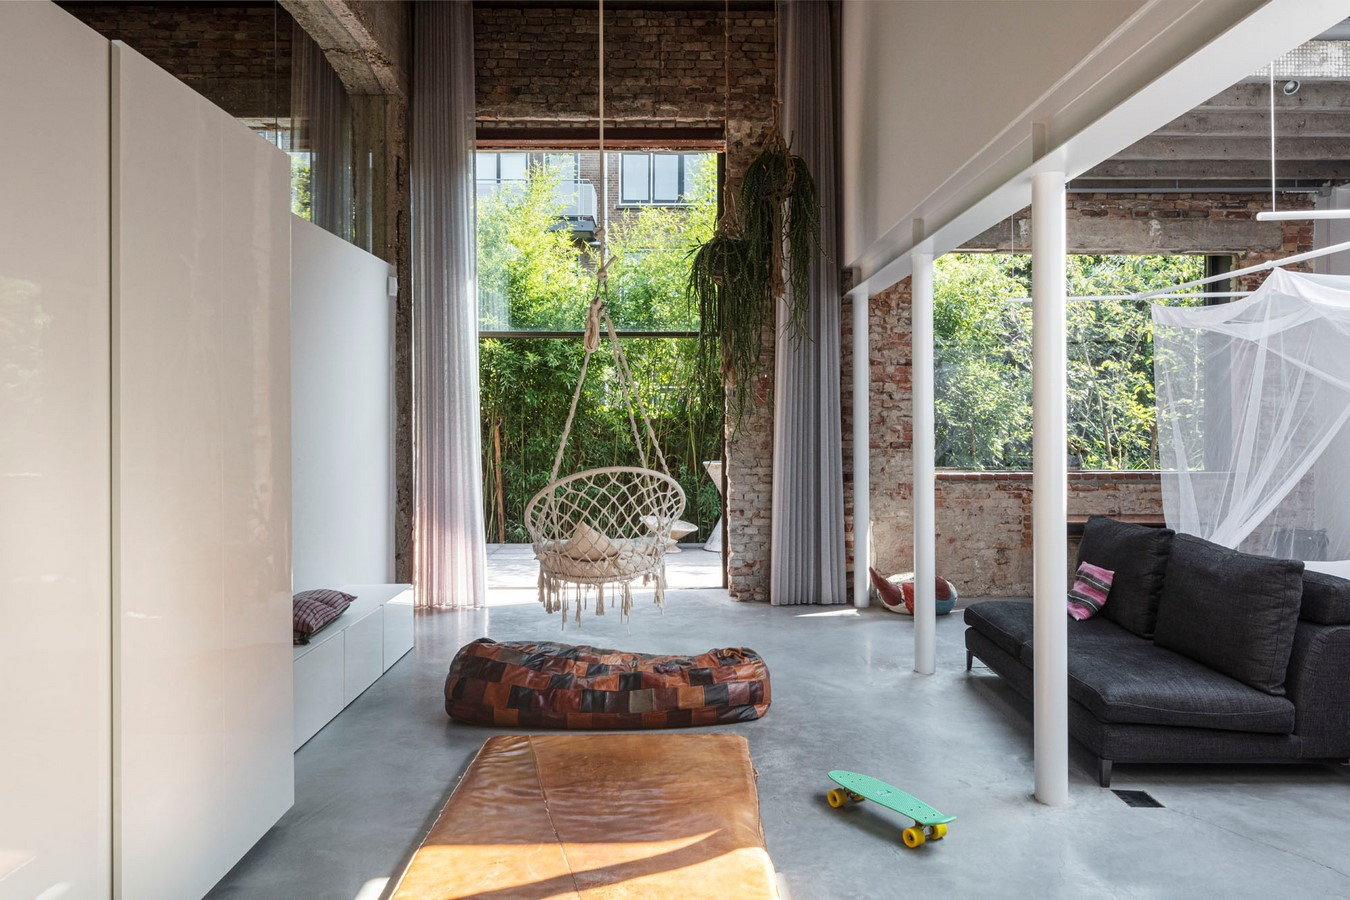 Abandoned 1940s Sports Building converted into New Villa With Naked Brick Walls by MASA Architects - Sheet8